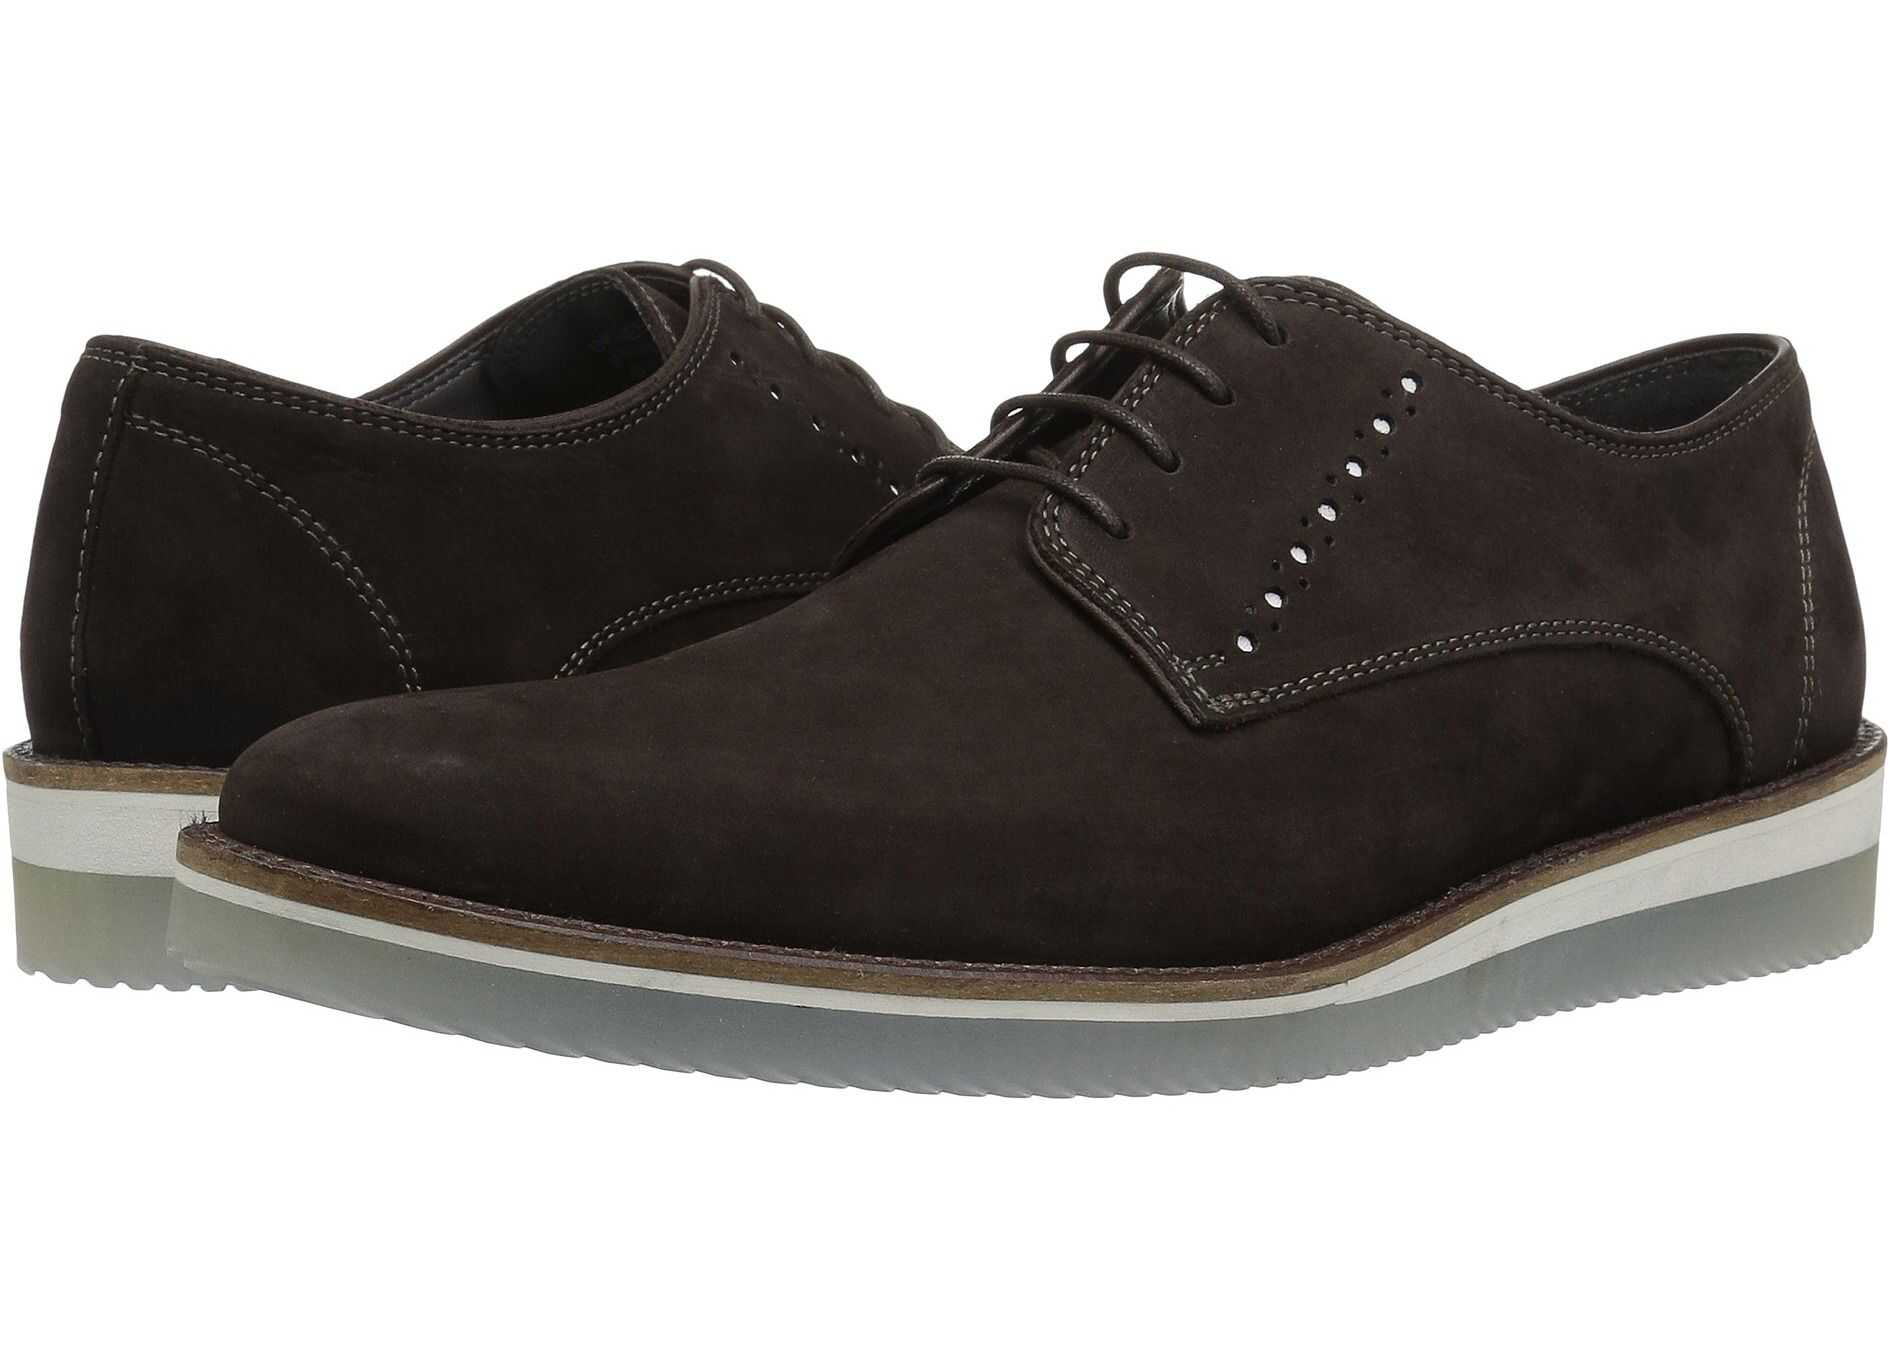 Steve Madden Inquest Brown Nubuck